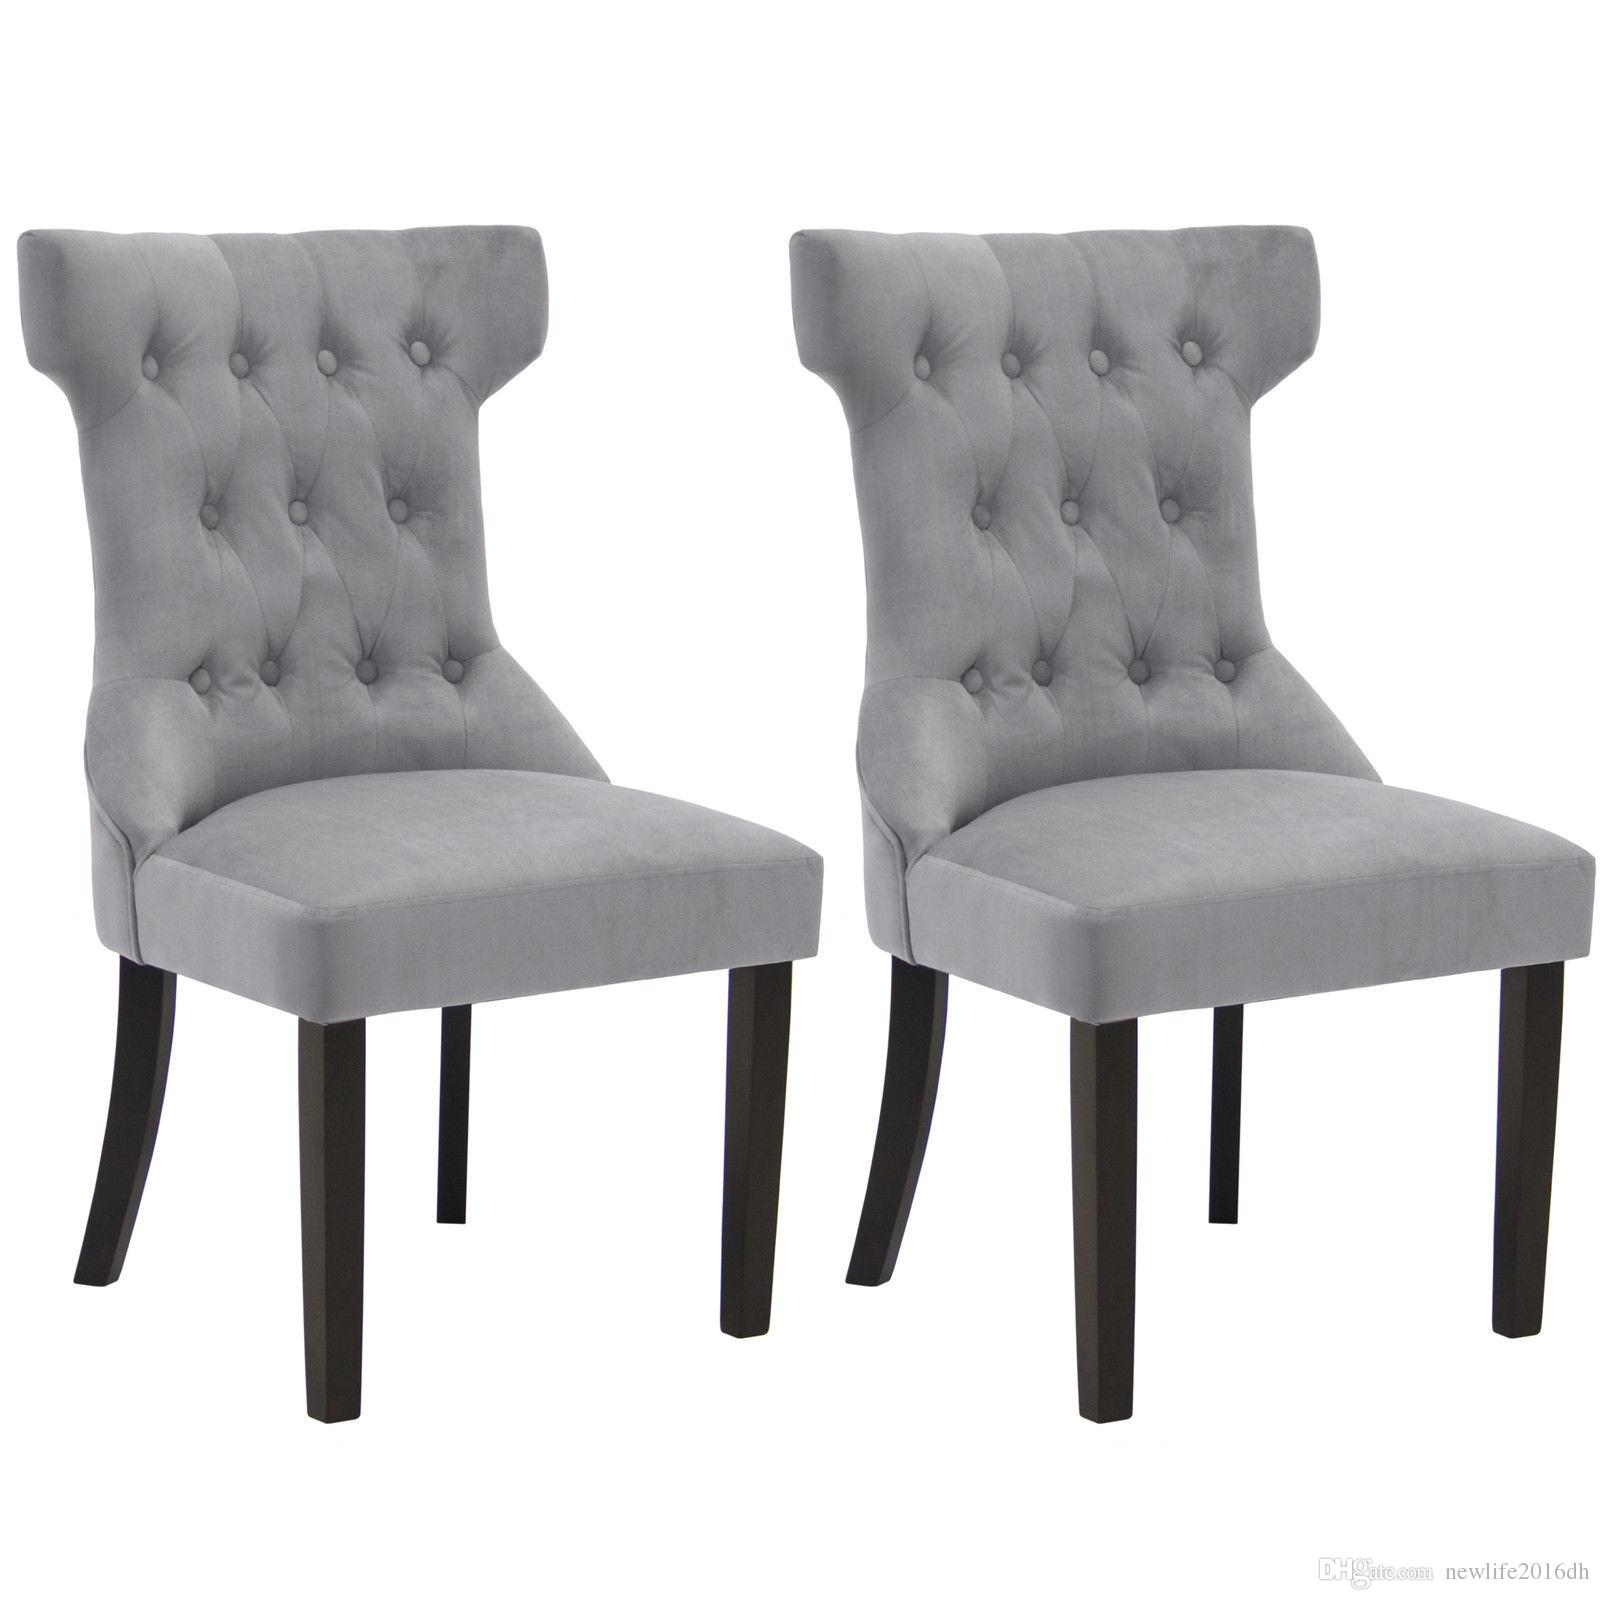 2018 bcp set of 2 elegant design tufted dining chairs contemporary furniture gray from newlife2016dh 155 78 dhgate com